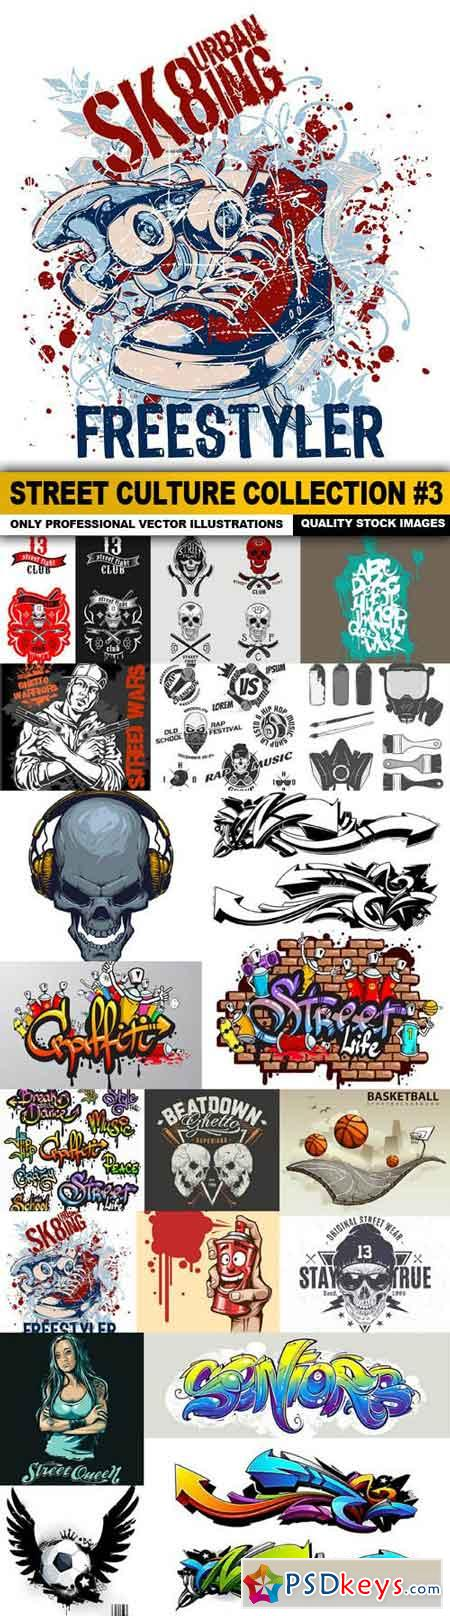 Street Culture Collection #3 - 20 Vector